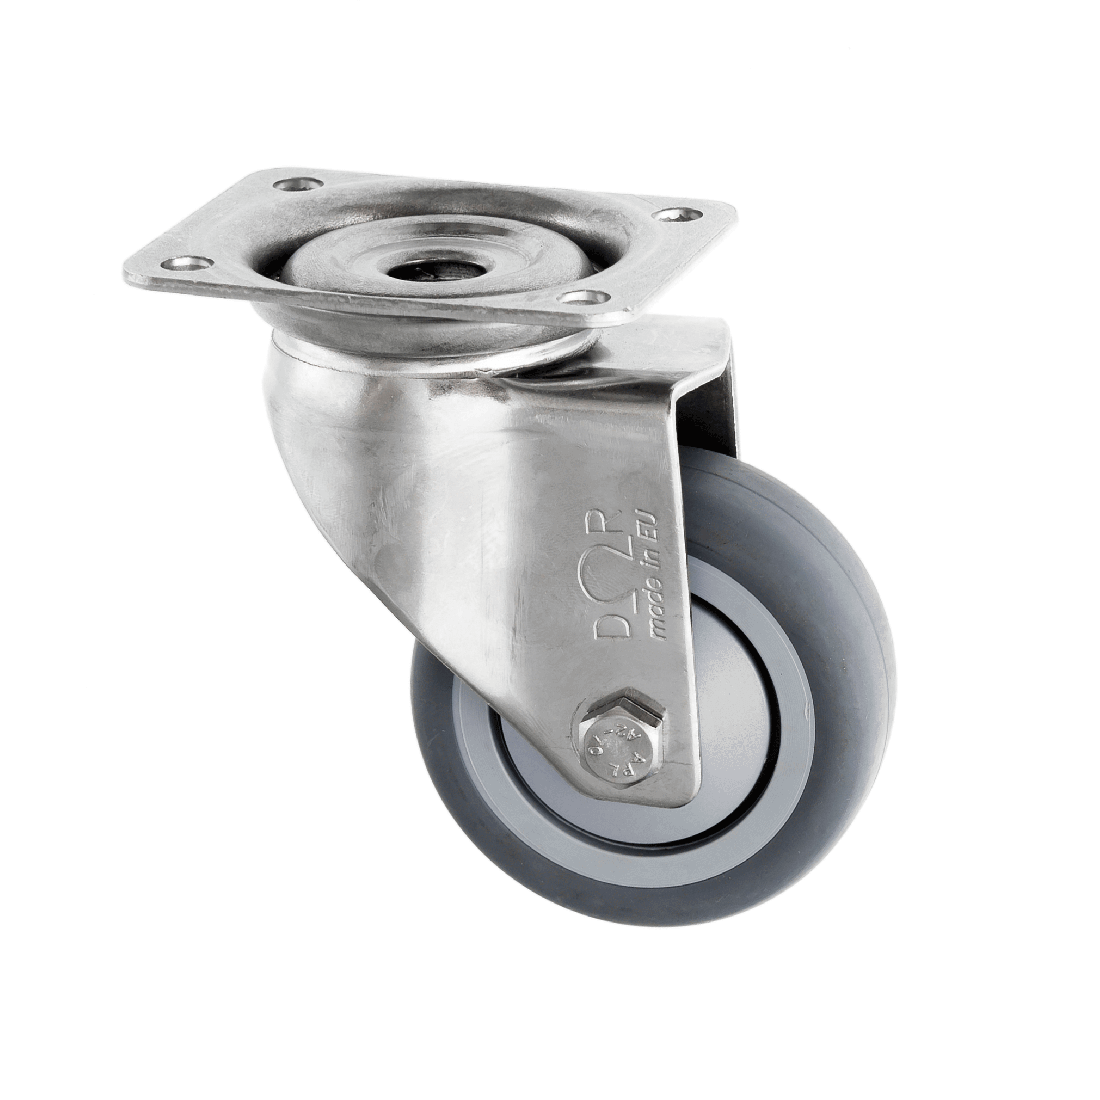 Stainless Steel Castors Thermoplastic Rubber Wheel Series SSL